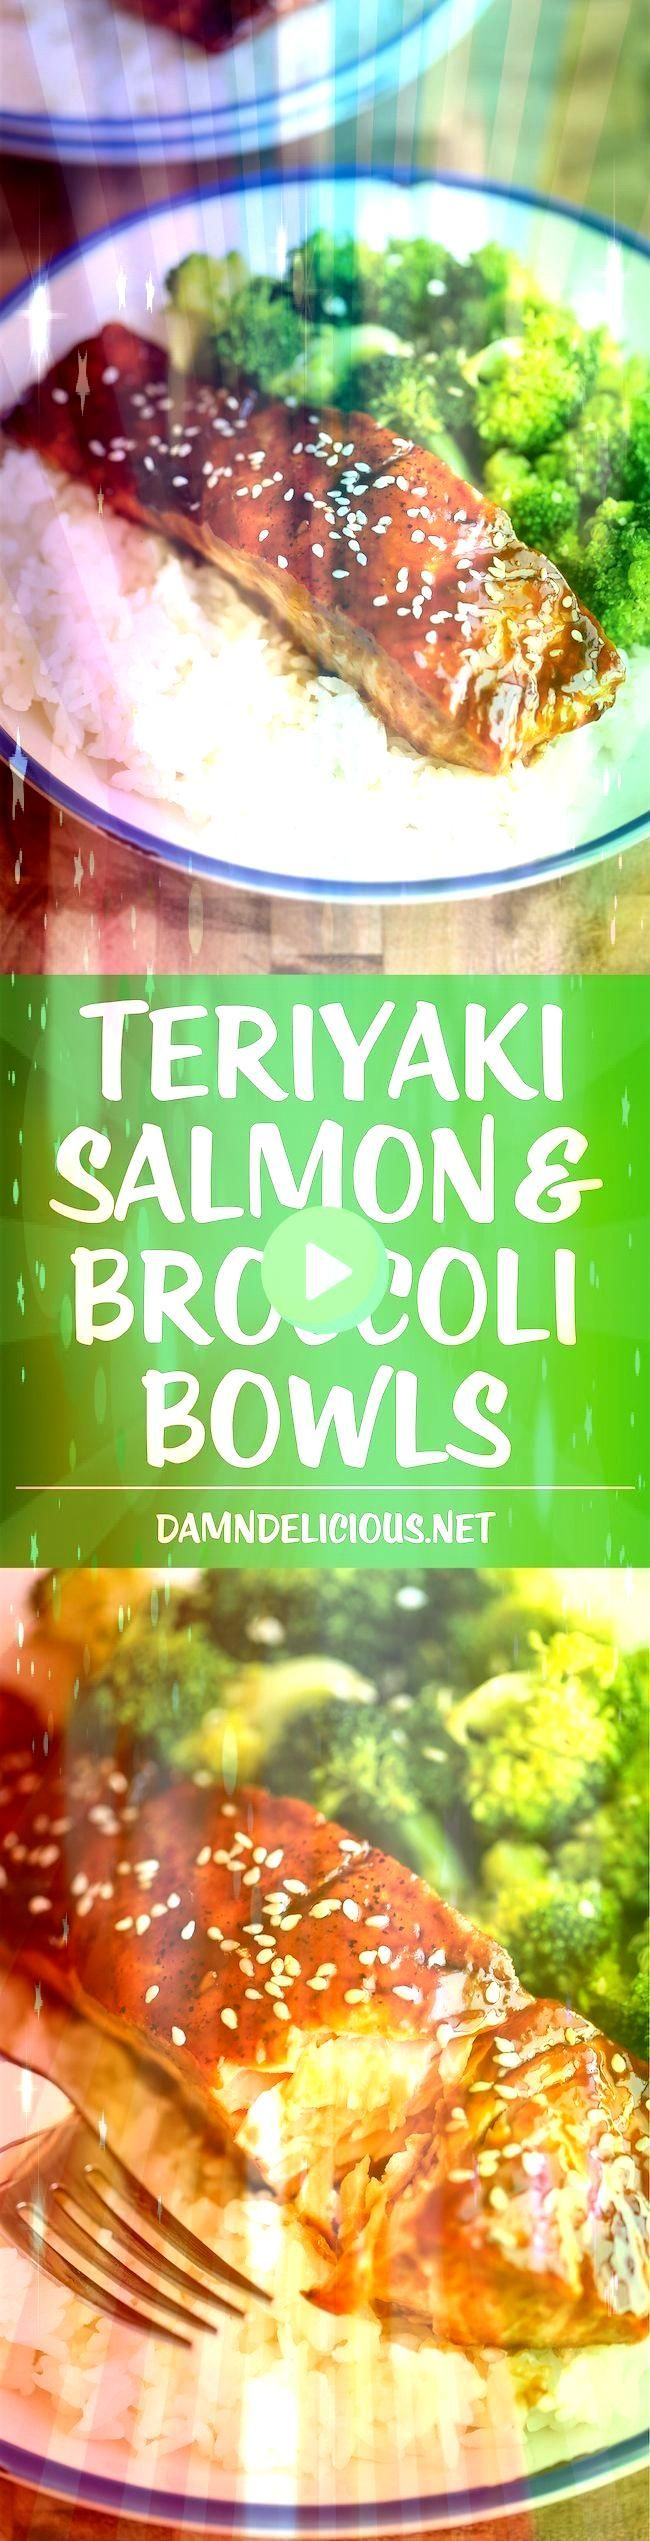 Teriyaki Salmon and Broccoli Bowls #teriyakisalmon #teriyaki #broccoli #salmon #bowls #and #newTeriyaki Salmon and Broccoli Bowls - -Teriyaki Salmon and Broccoli Bowls - -  Fried Chicken From Around the World  Balsamic Glazed Salmon-healthy and ke sure to cook sauce longer than In recipe to make it more of a rved with spaghetti squash on here  Creamy Spinach Stuffed Salmon in garlic butter is a new delicious way to enjoy salmon! Filled with cream cheese, spinach, parmesan cheese and garlic, this #teriyakisalmon